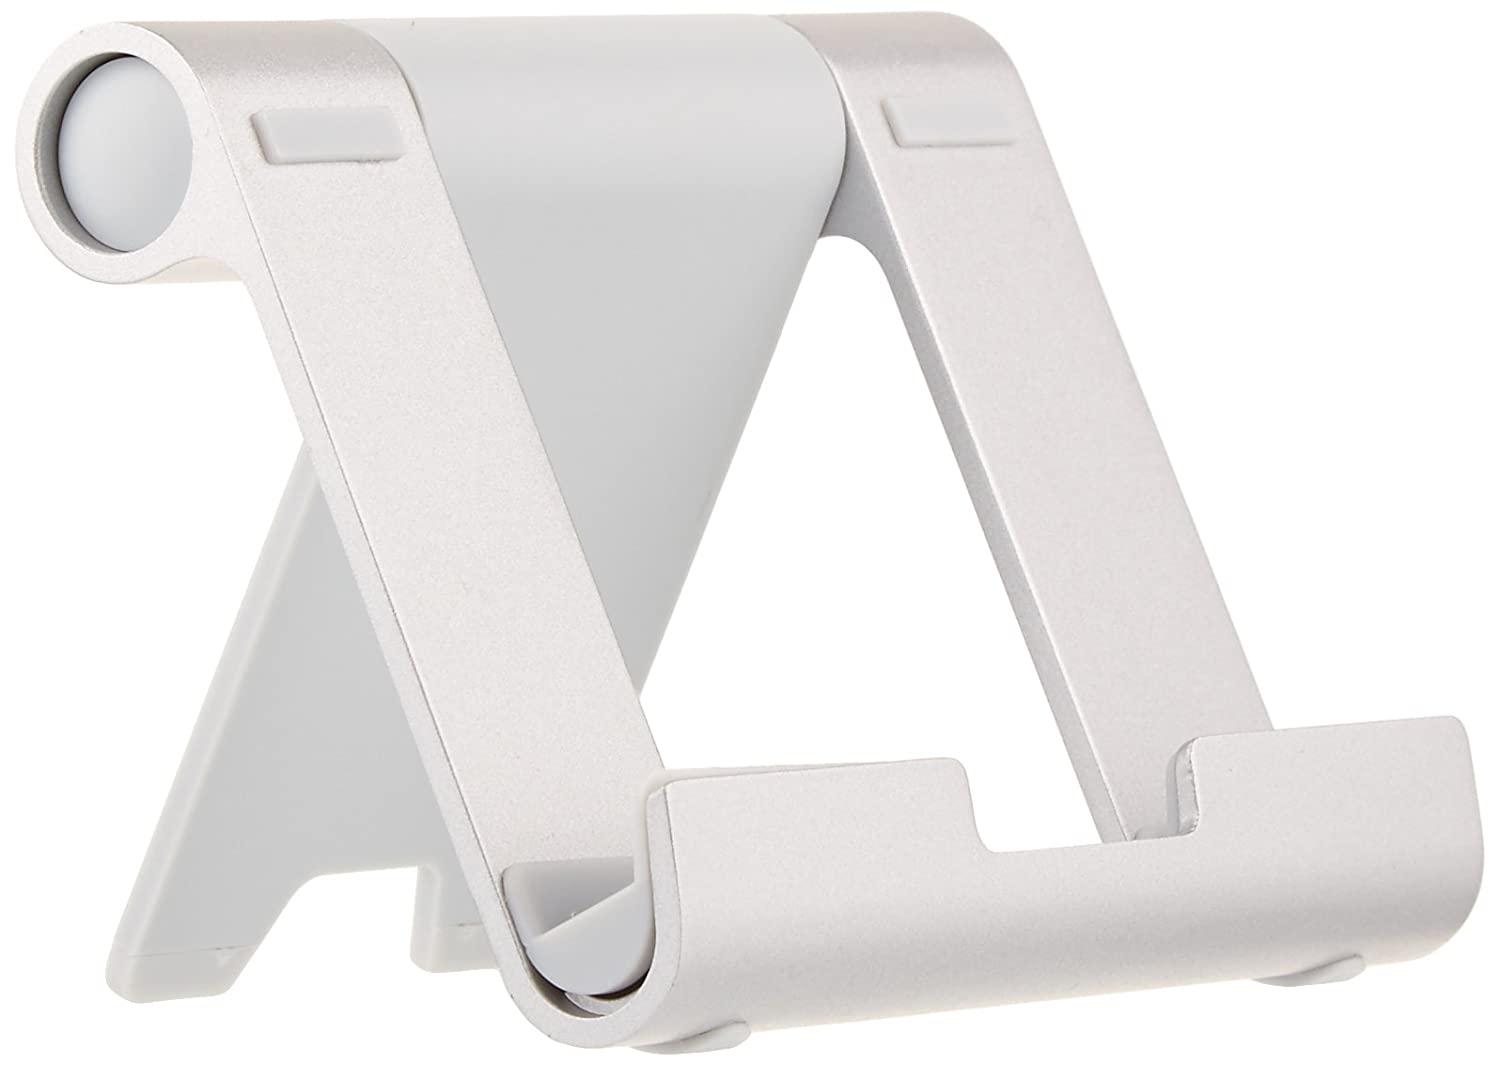 AmazonBasics Multi-Angle Portable Stand for Tablets, E-readers and Phones - Silver